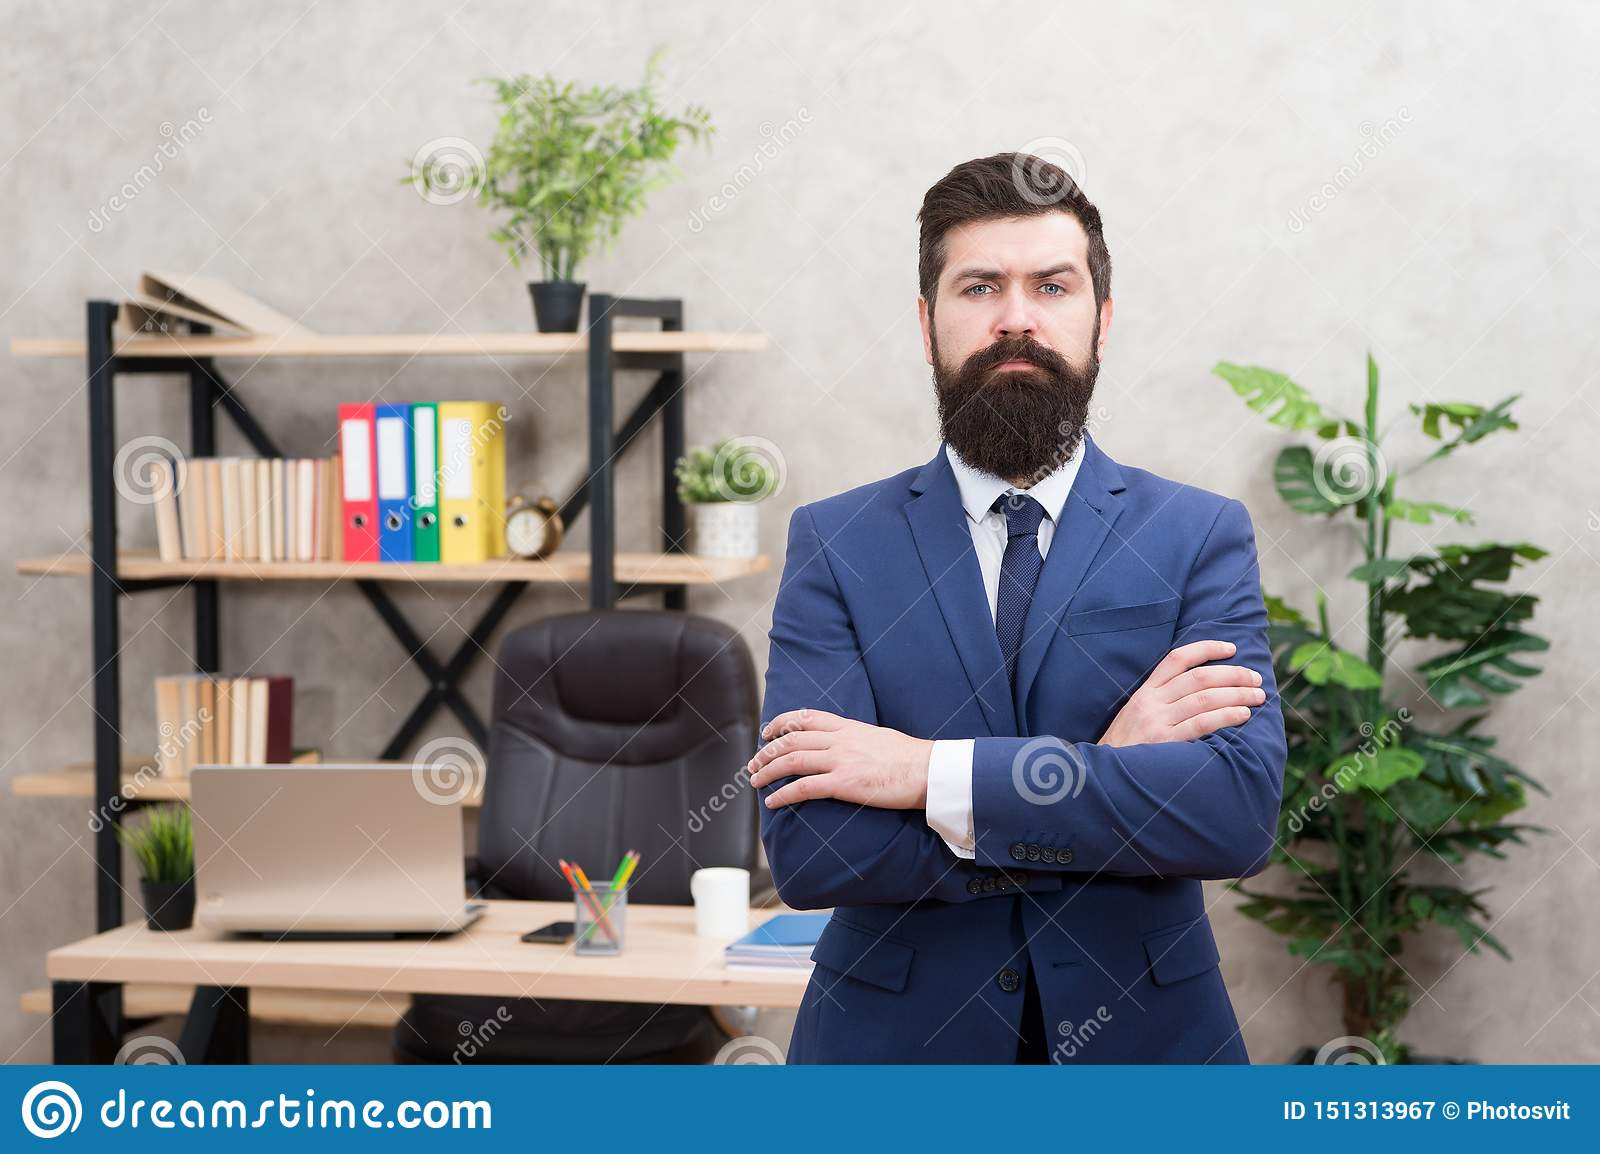 HR manager. Man bearded manager recruiter in office. Recruiter career. Human resources. Hiring concept. Recruitment